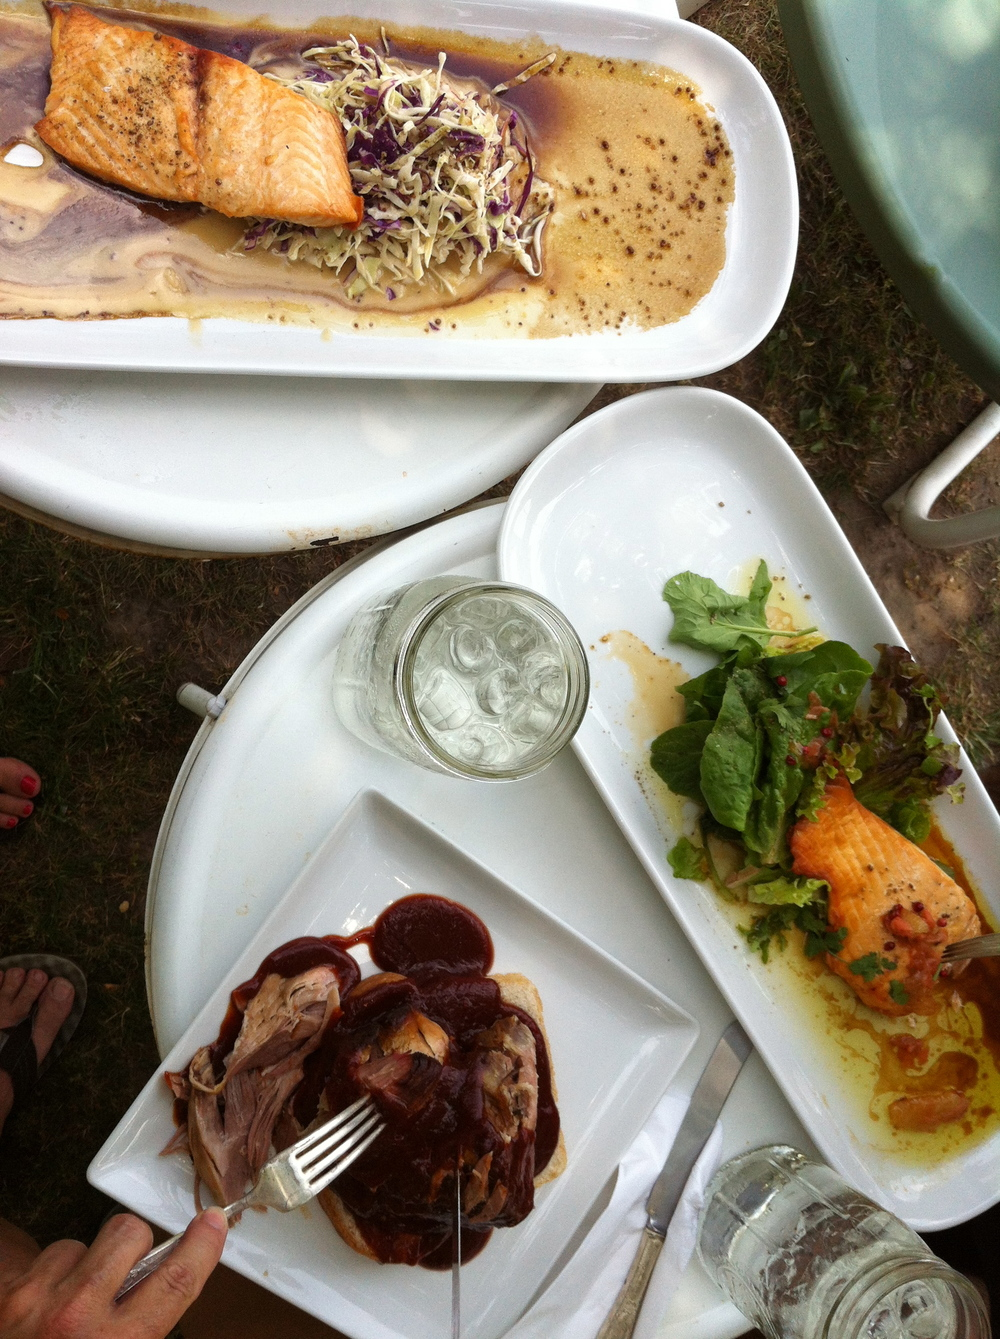 A delicious summer meal alfresco.